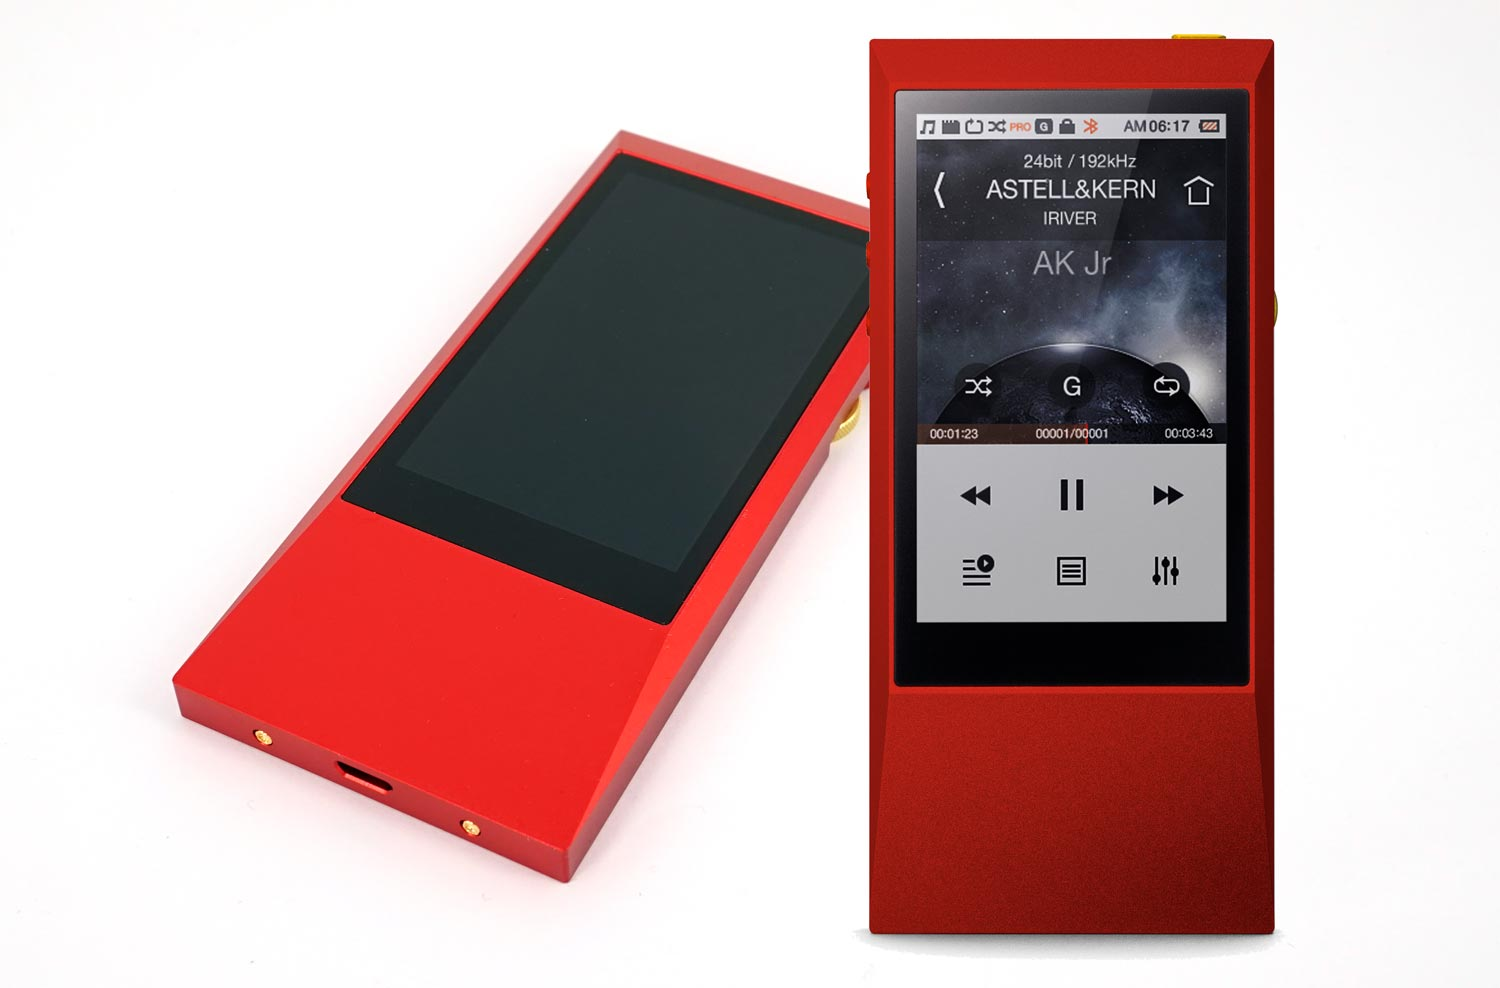 The Astell&Kern AK Jr Limited Edition